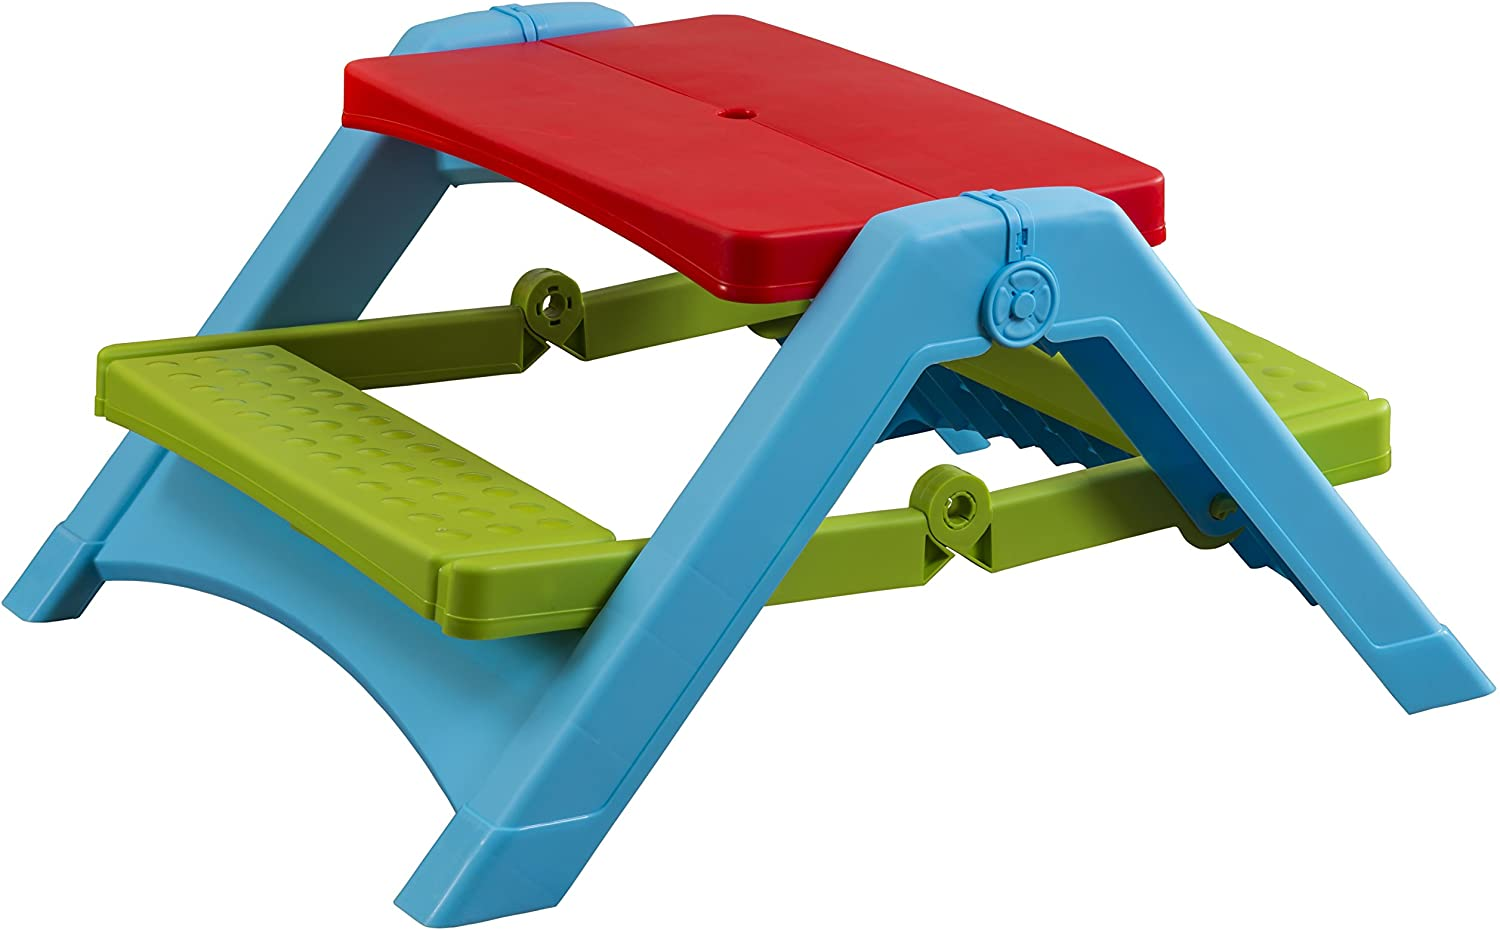 - Amazon.com: Pal Play Foldable Kids Picnic Table - Seats Four Kids